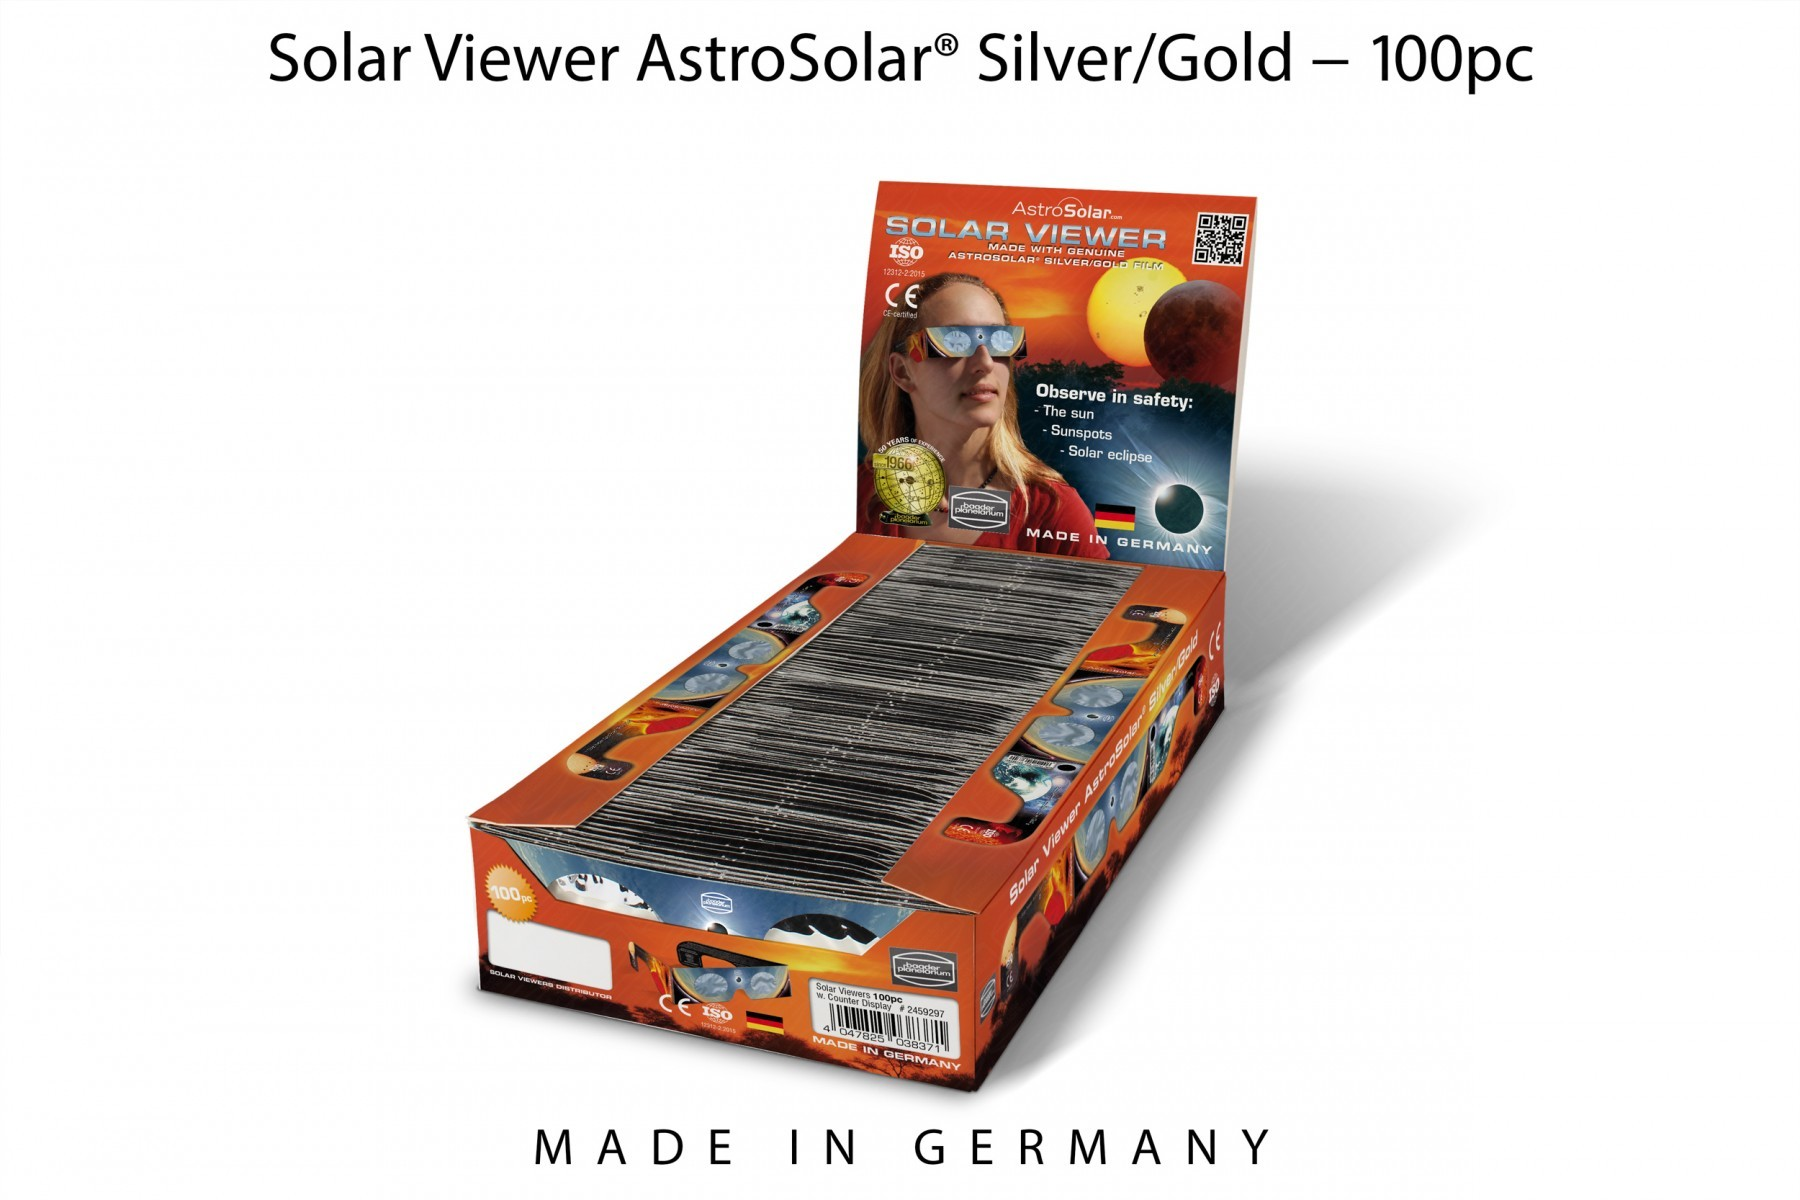 100 pcs Solar Viewer AstroSolar® Silver/Gold - Set with counter display